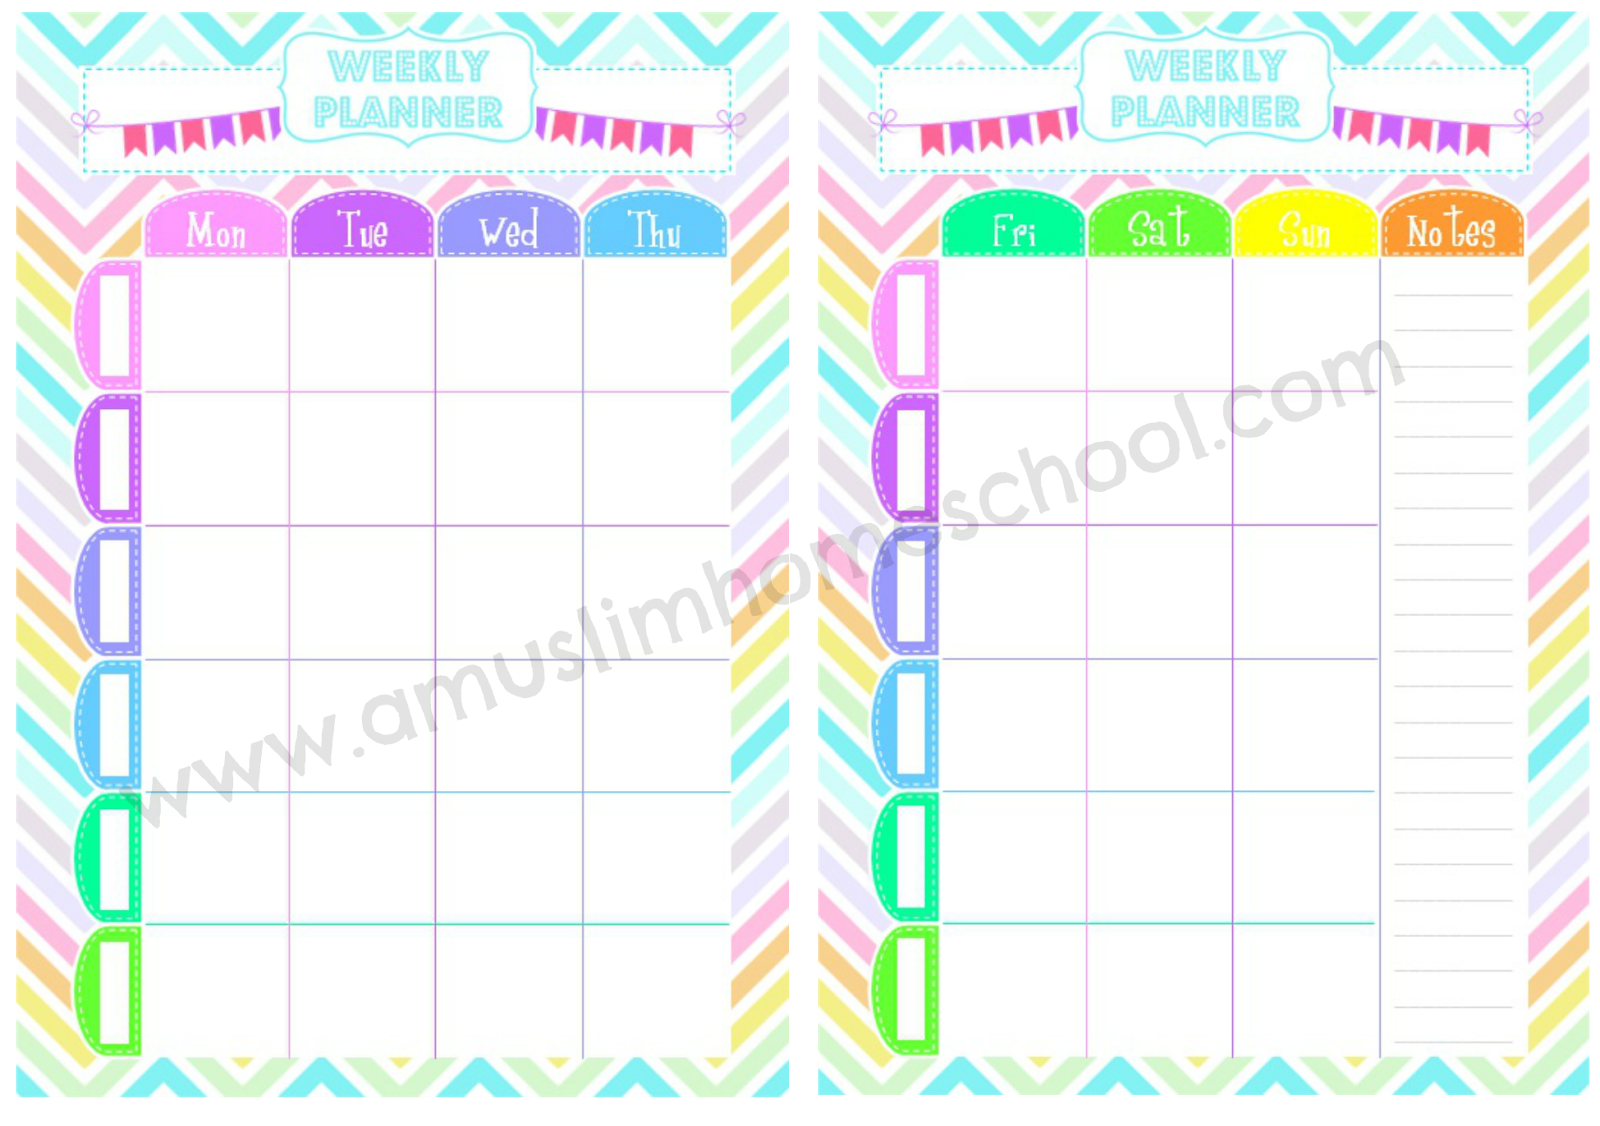 muslim homeschool: Free weekly planner printable for home or school!